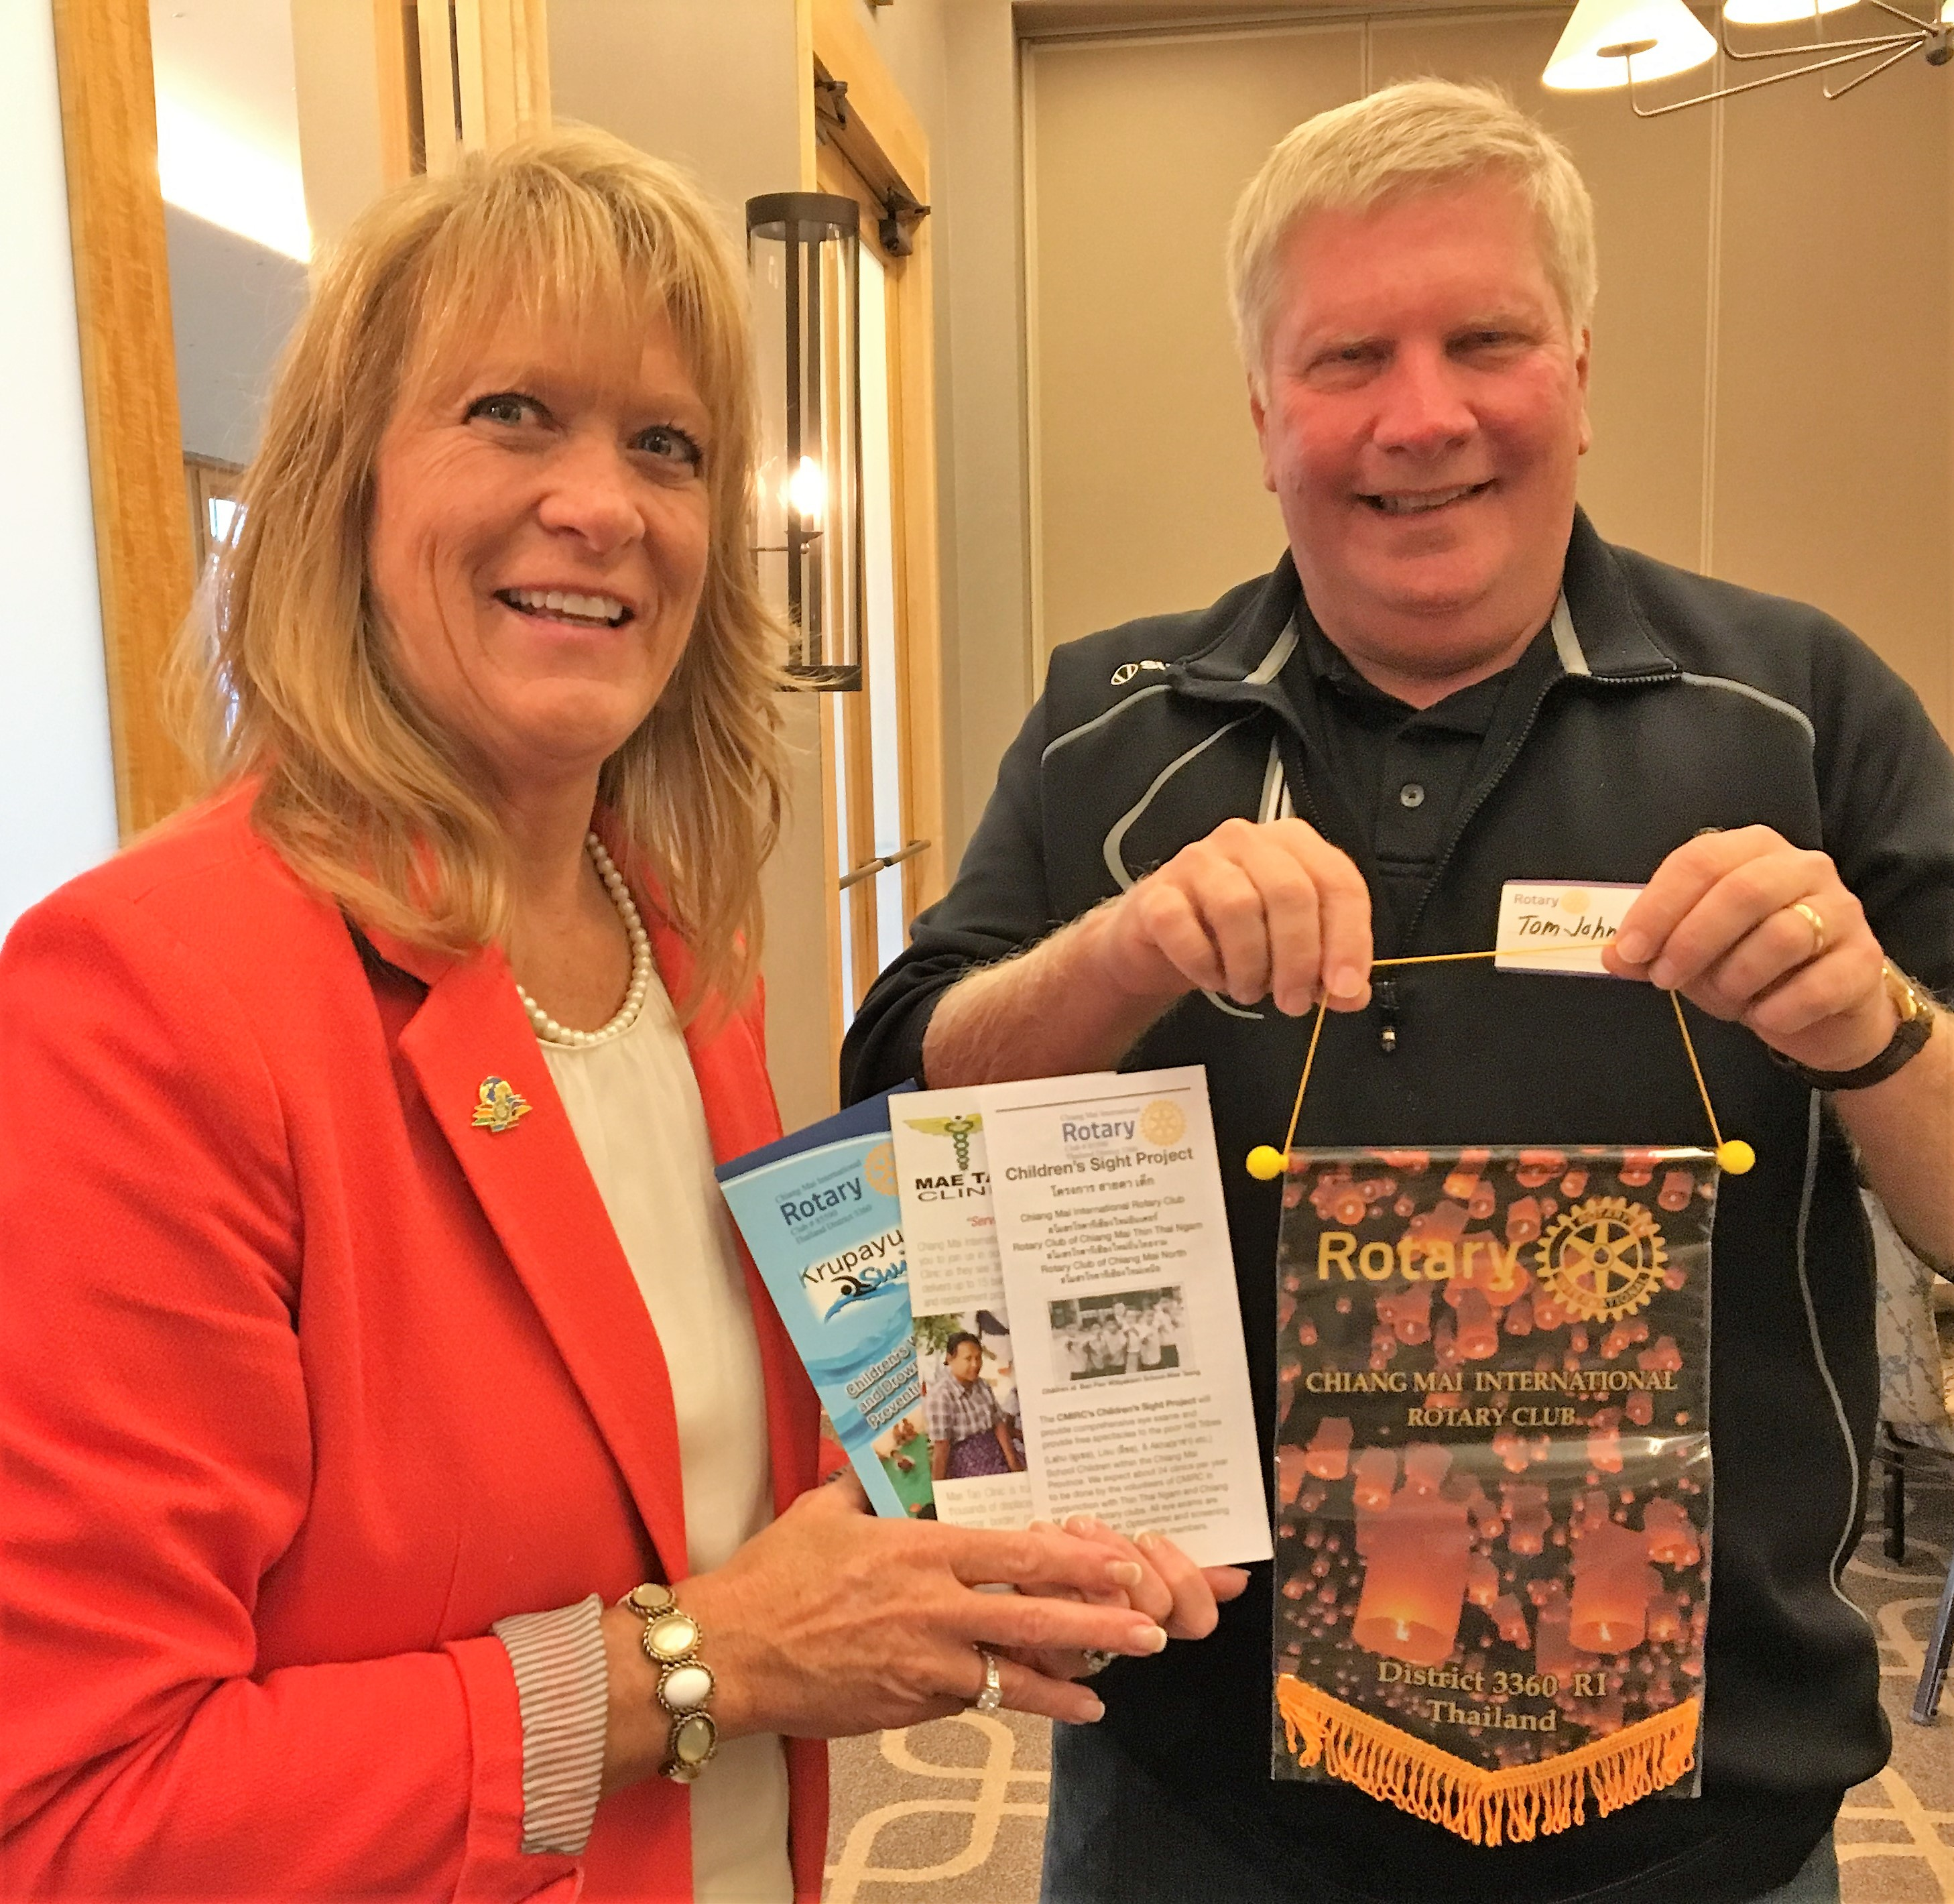 Tom Johnson presents President Char Weber with a flag from the Rotary Club in Chiang Mai, Thailand